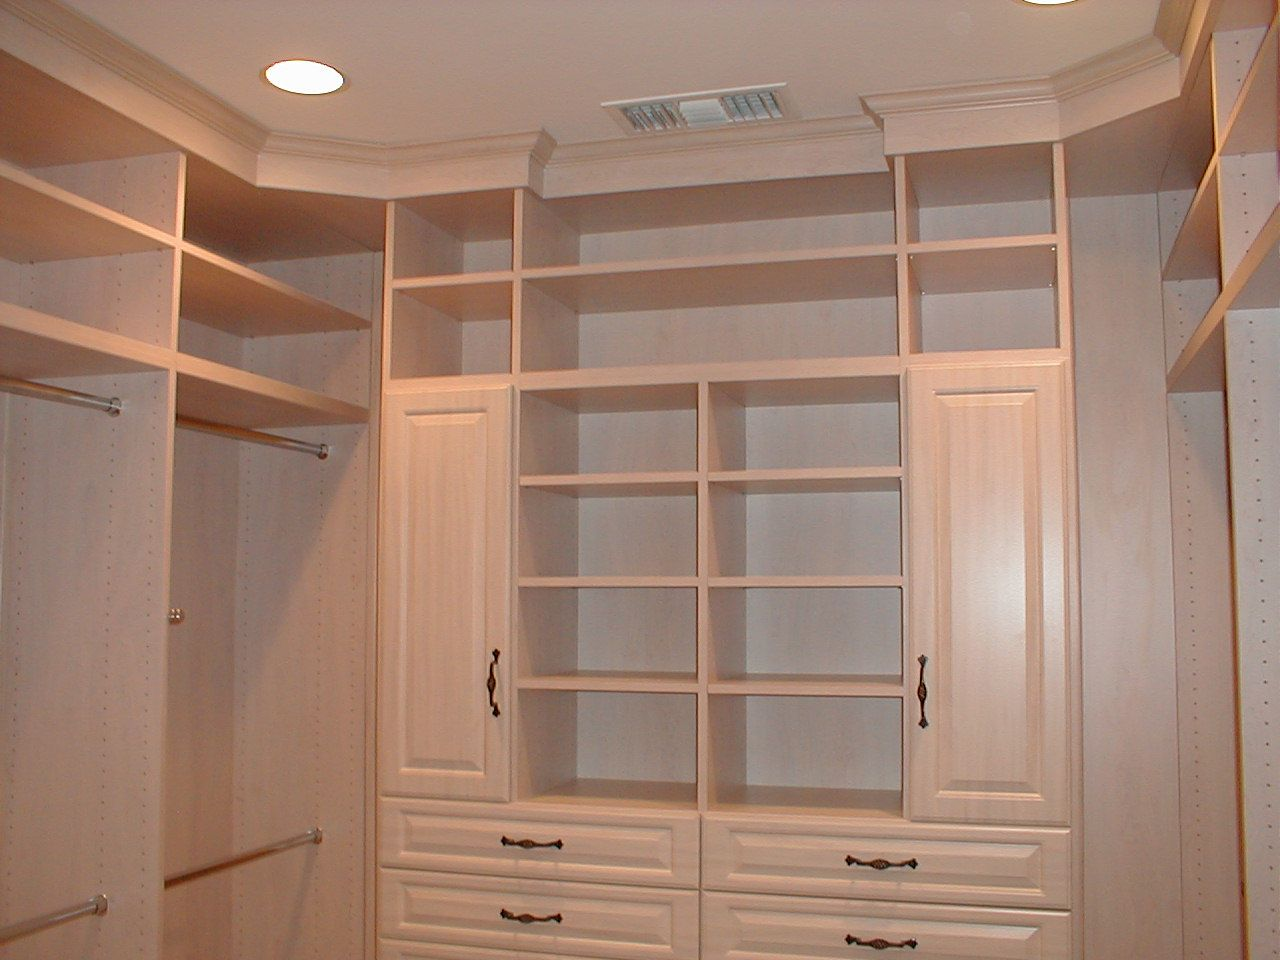 custom closet design | closet designs, custom closet design and